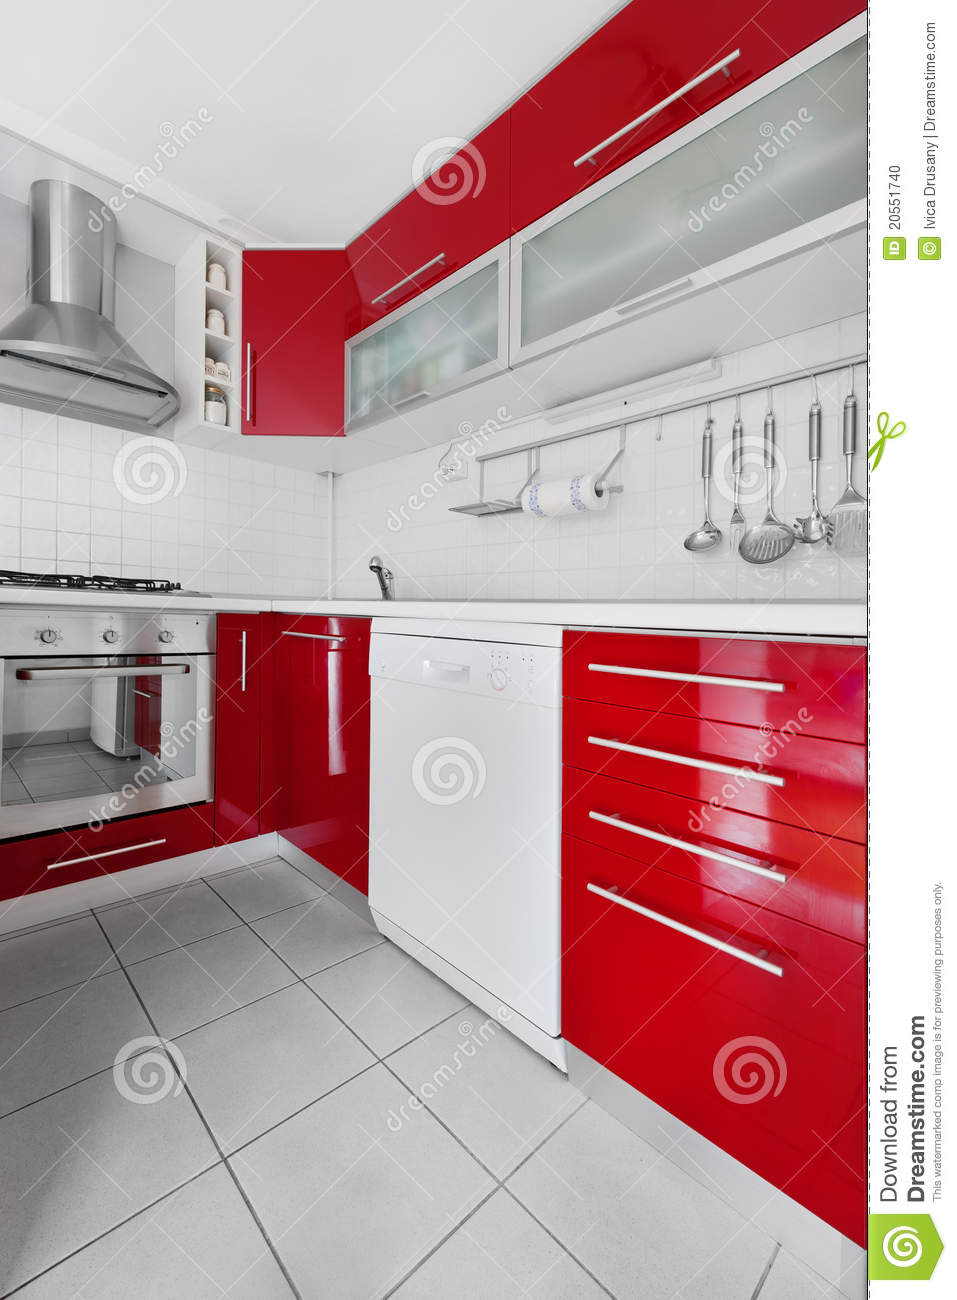 Cuisine rouge et blanche moderne photo stock   image: 20551740